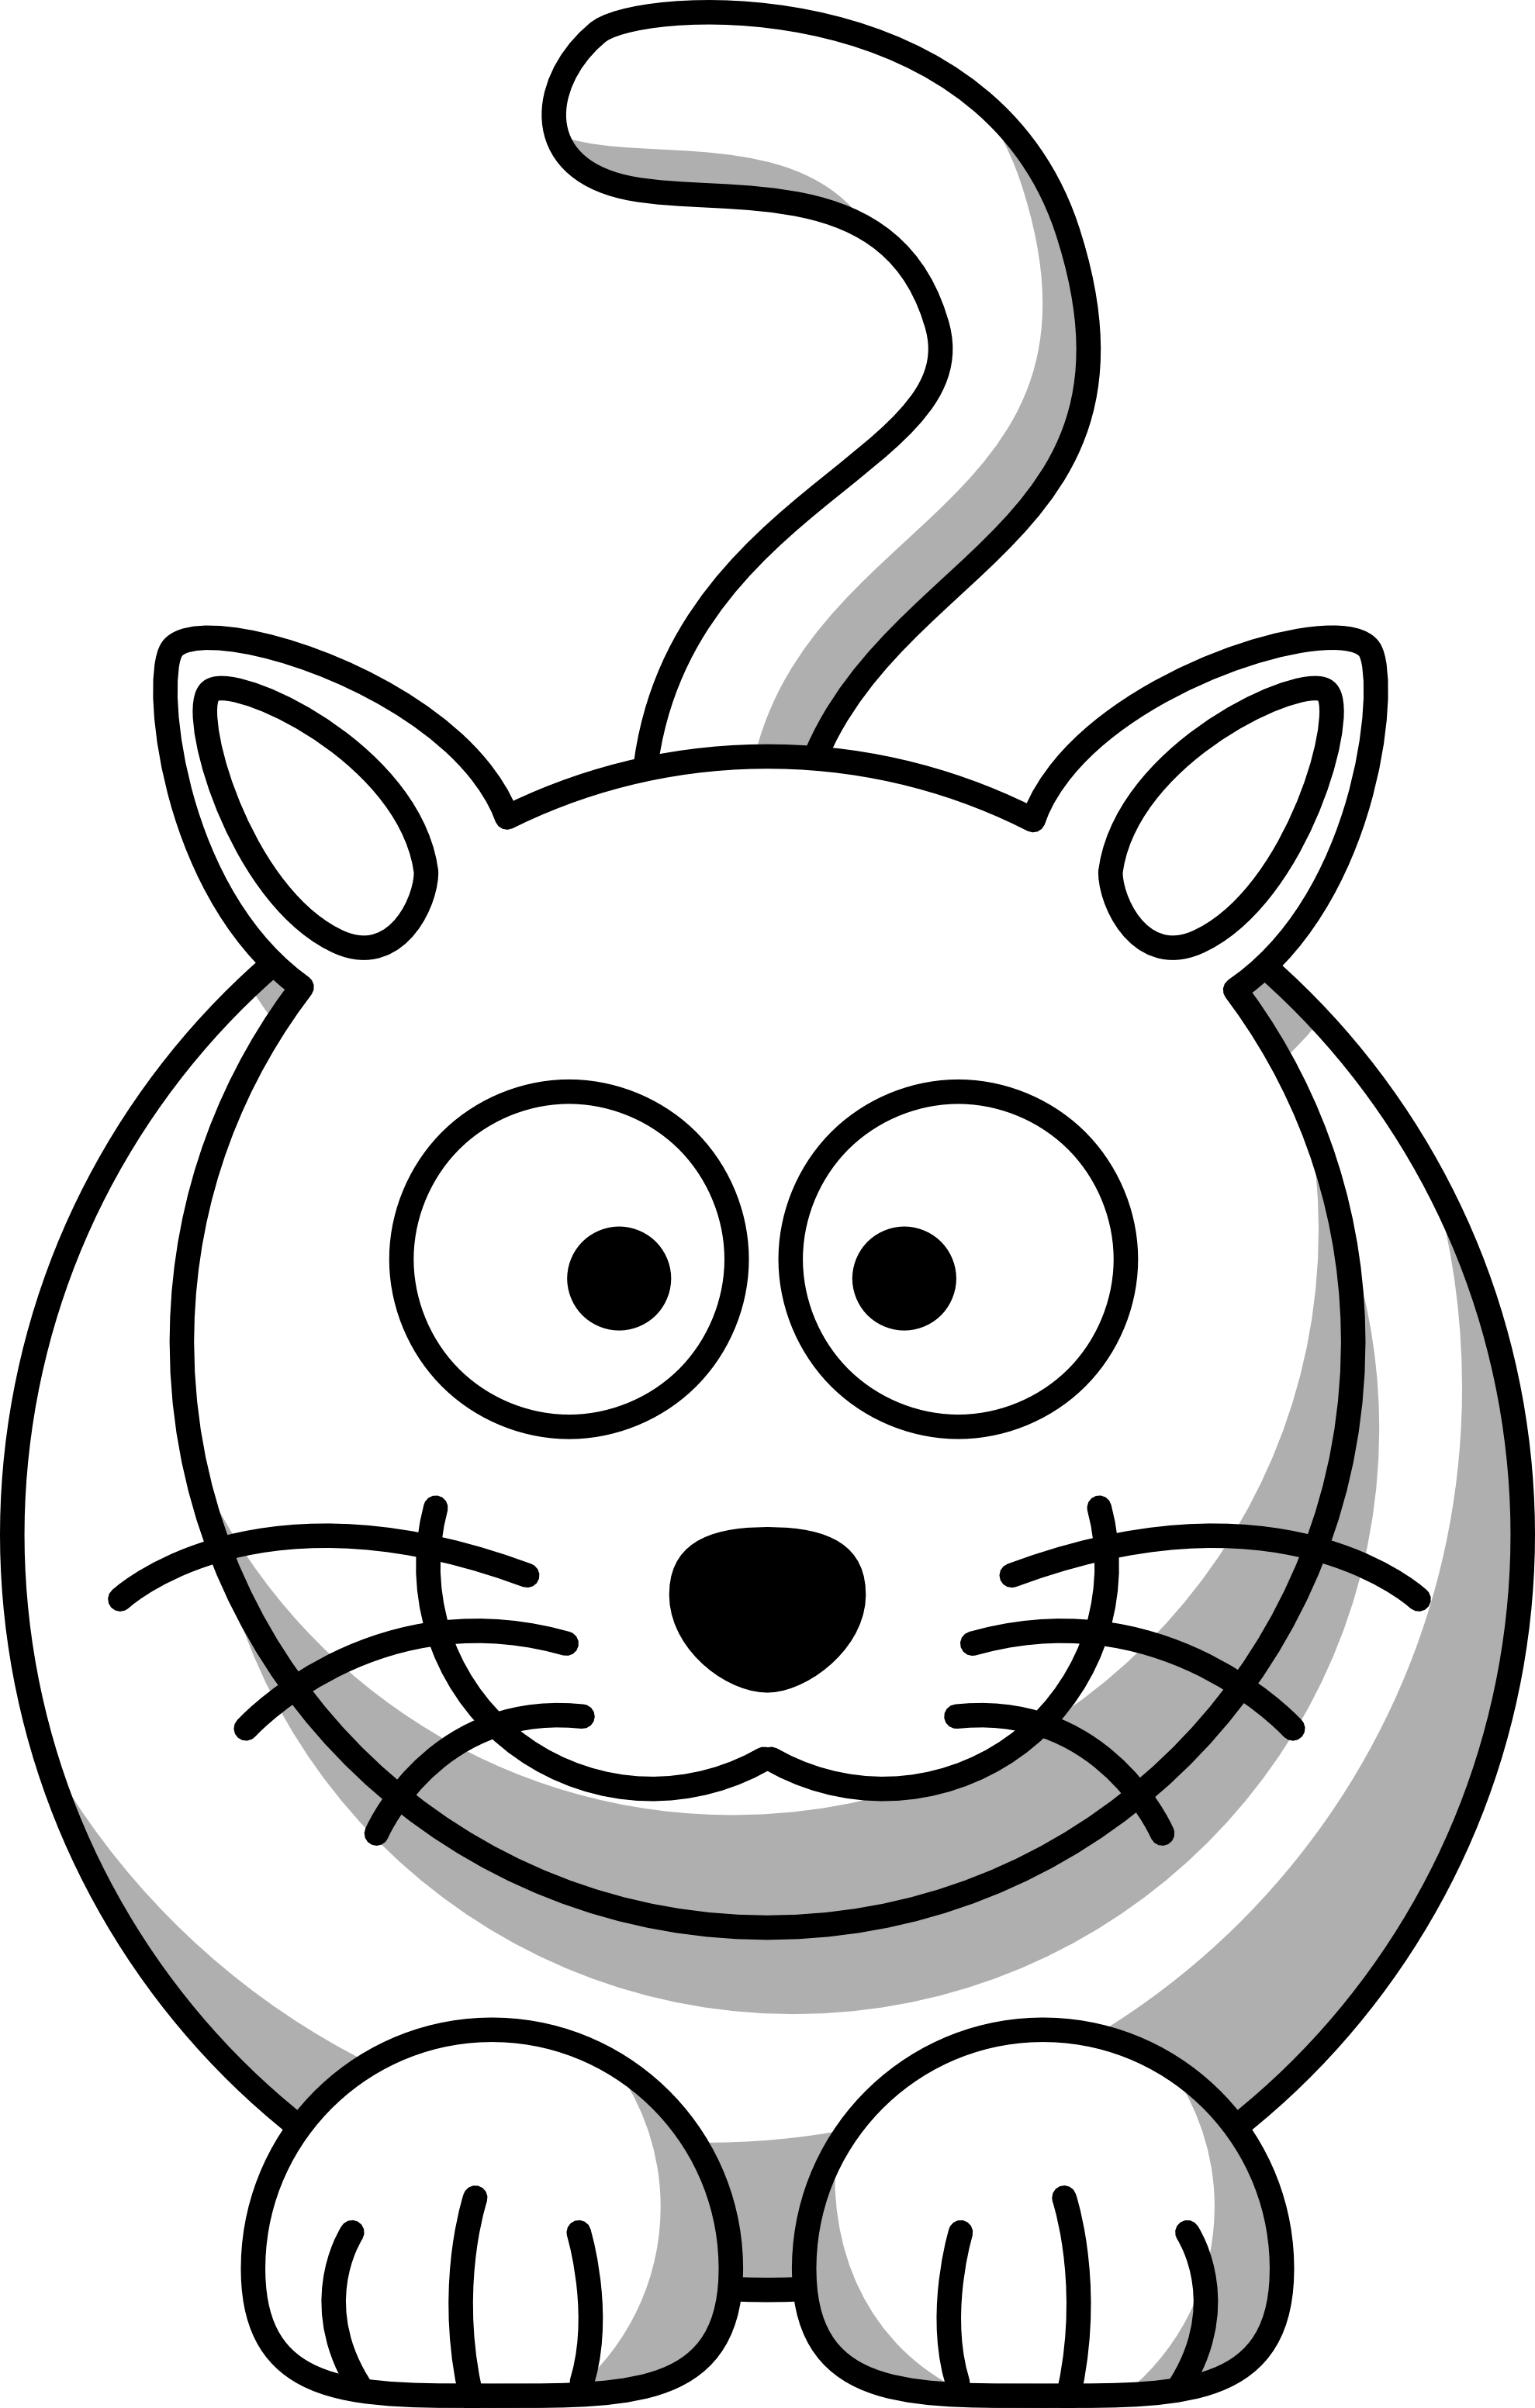 Cartoon Animals Black And White Pictures 5 HD Wallpapers | amagico. - Domestic Animals PNG Black And White